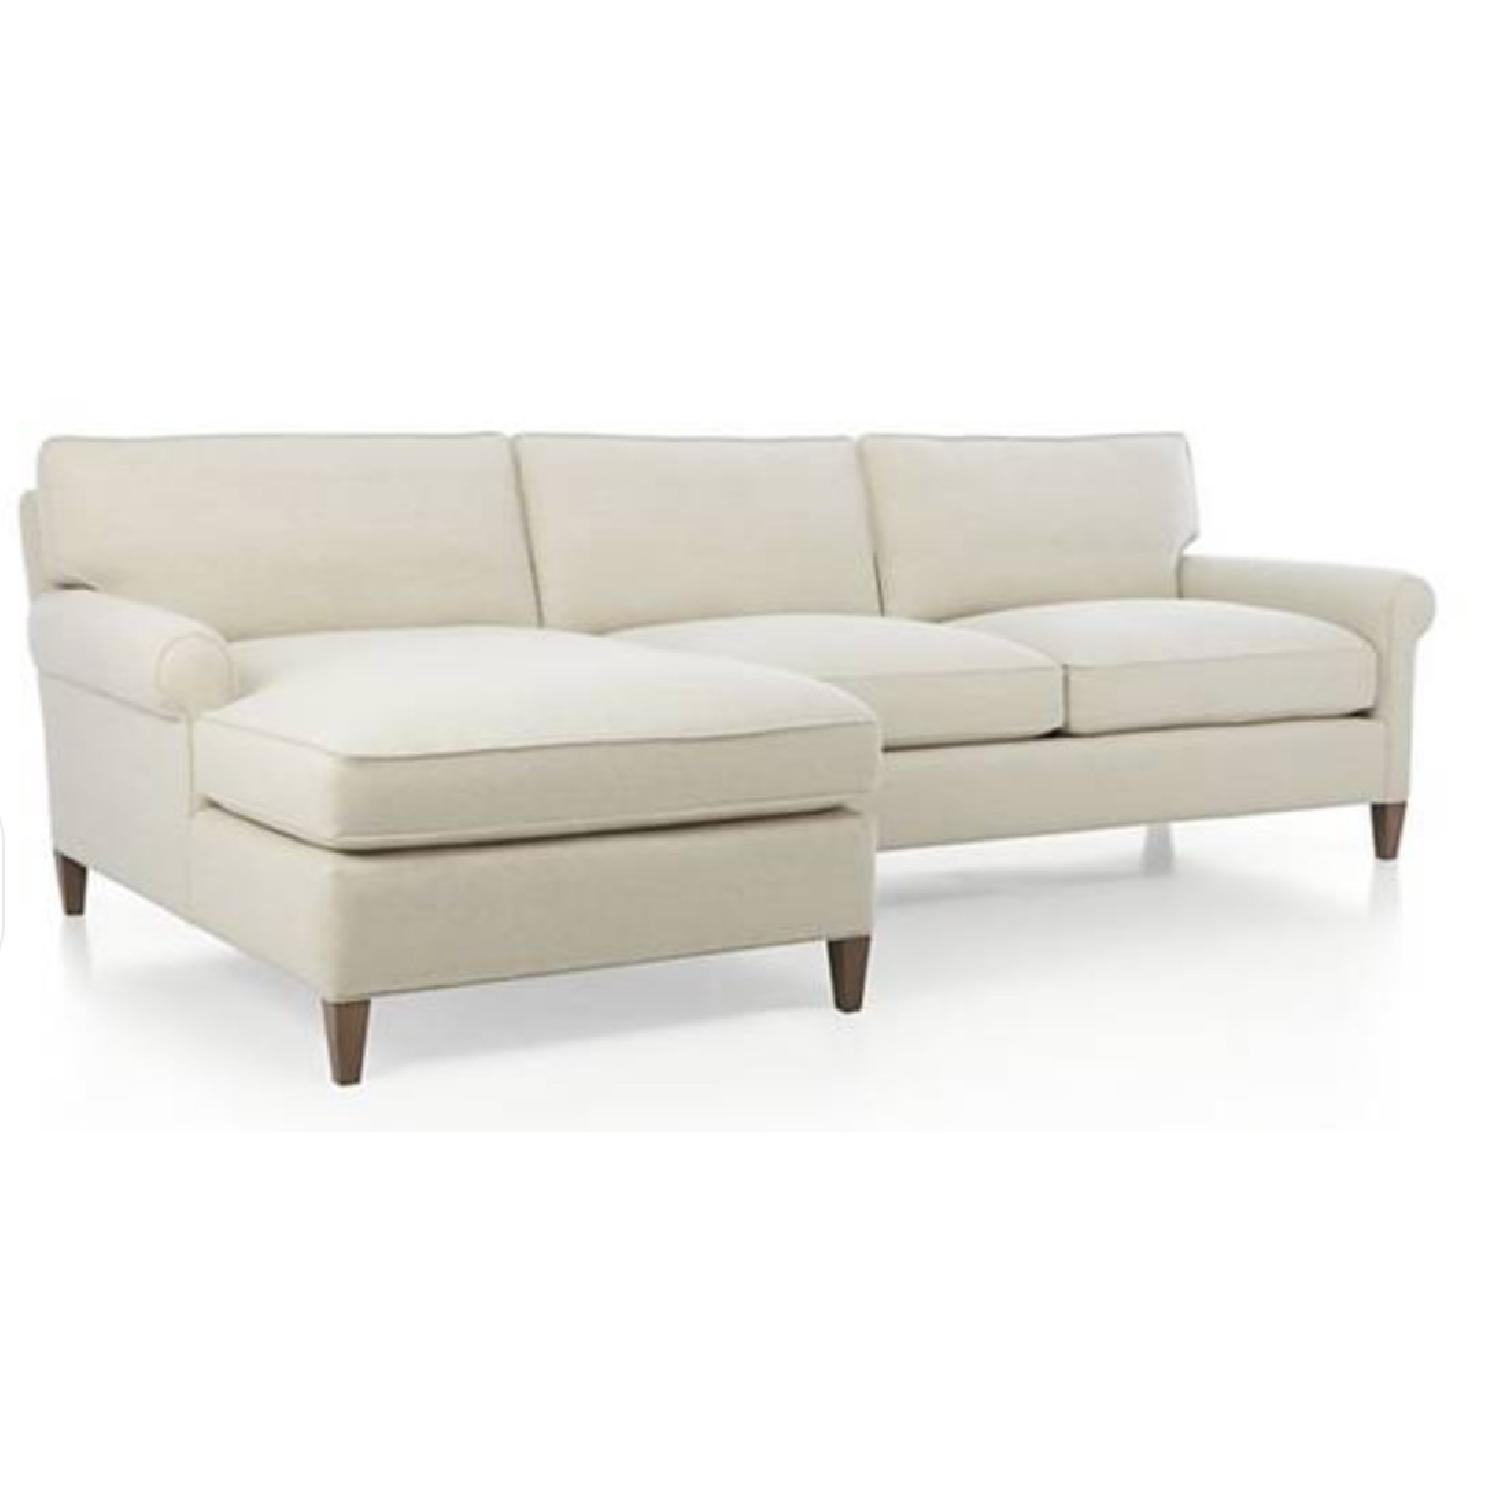 crate  u0026 barrel montclair 2 piece sectional sofa     crate  u0026 barrel montclair 2 piece sectional sofa   aptdeco  rh   aptdeco